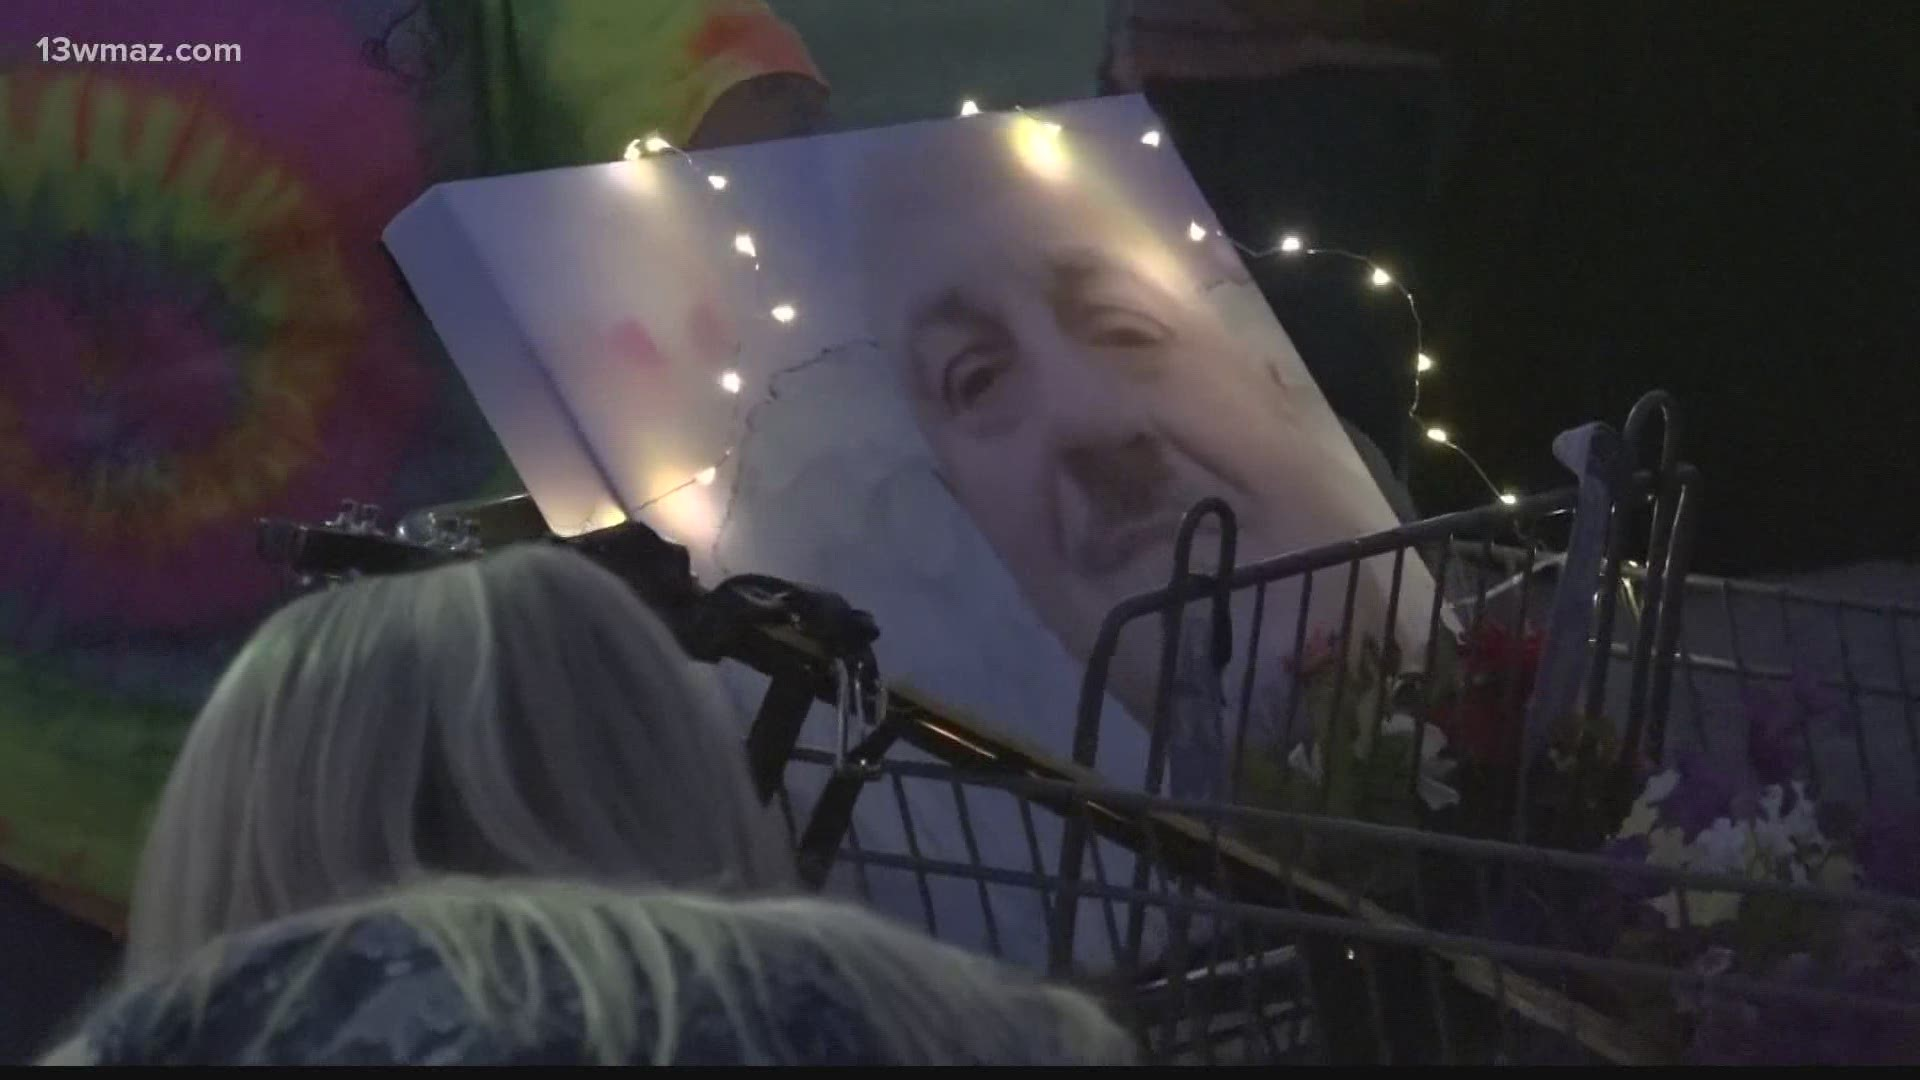 Roy Long Remembered By Family And Friends At Warner Robins Vigil Wfmynews2 Com